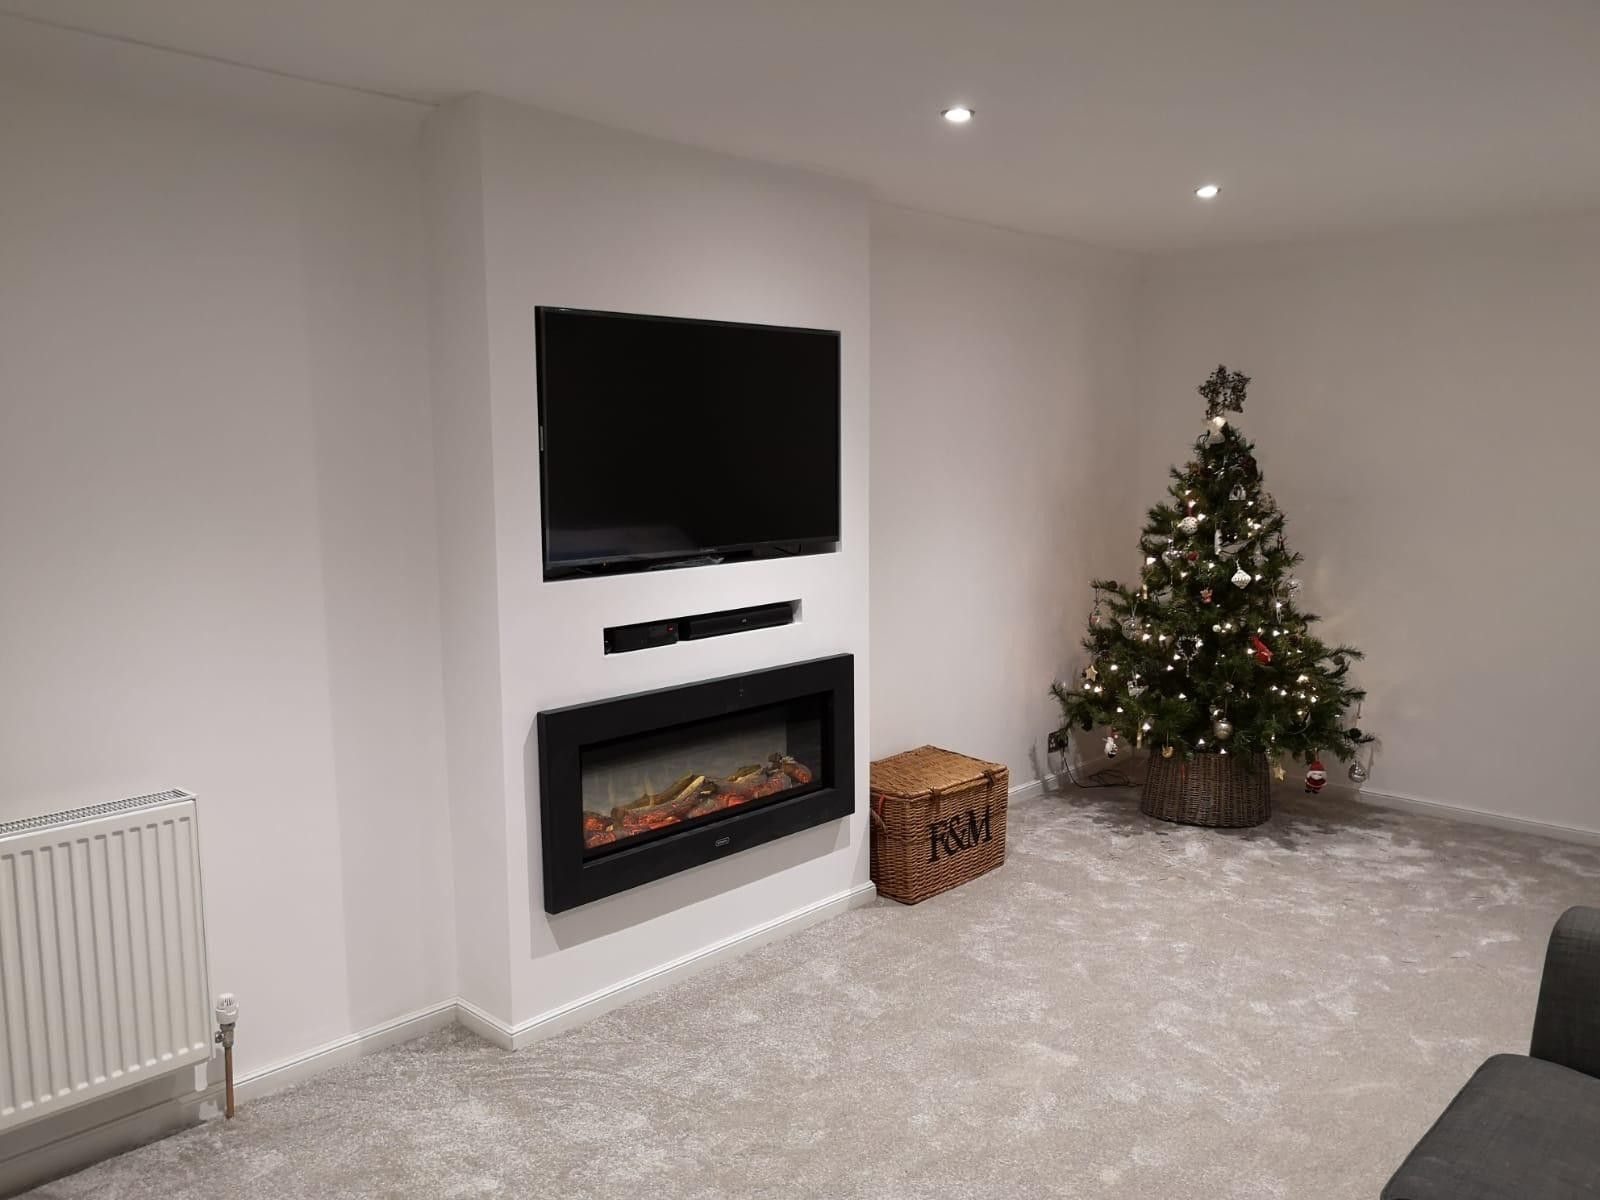 42+ Living room ideas with tv on chimney breast information